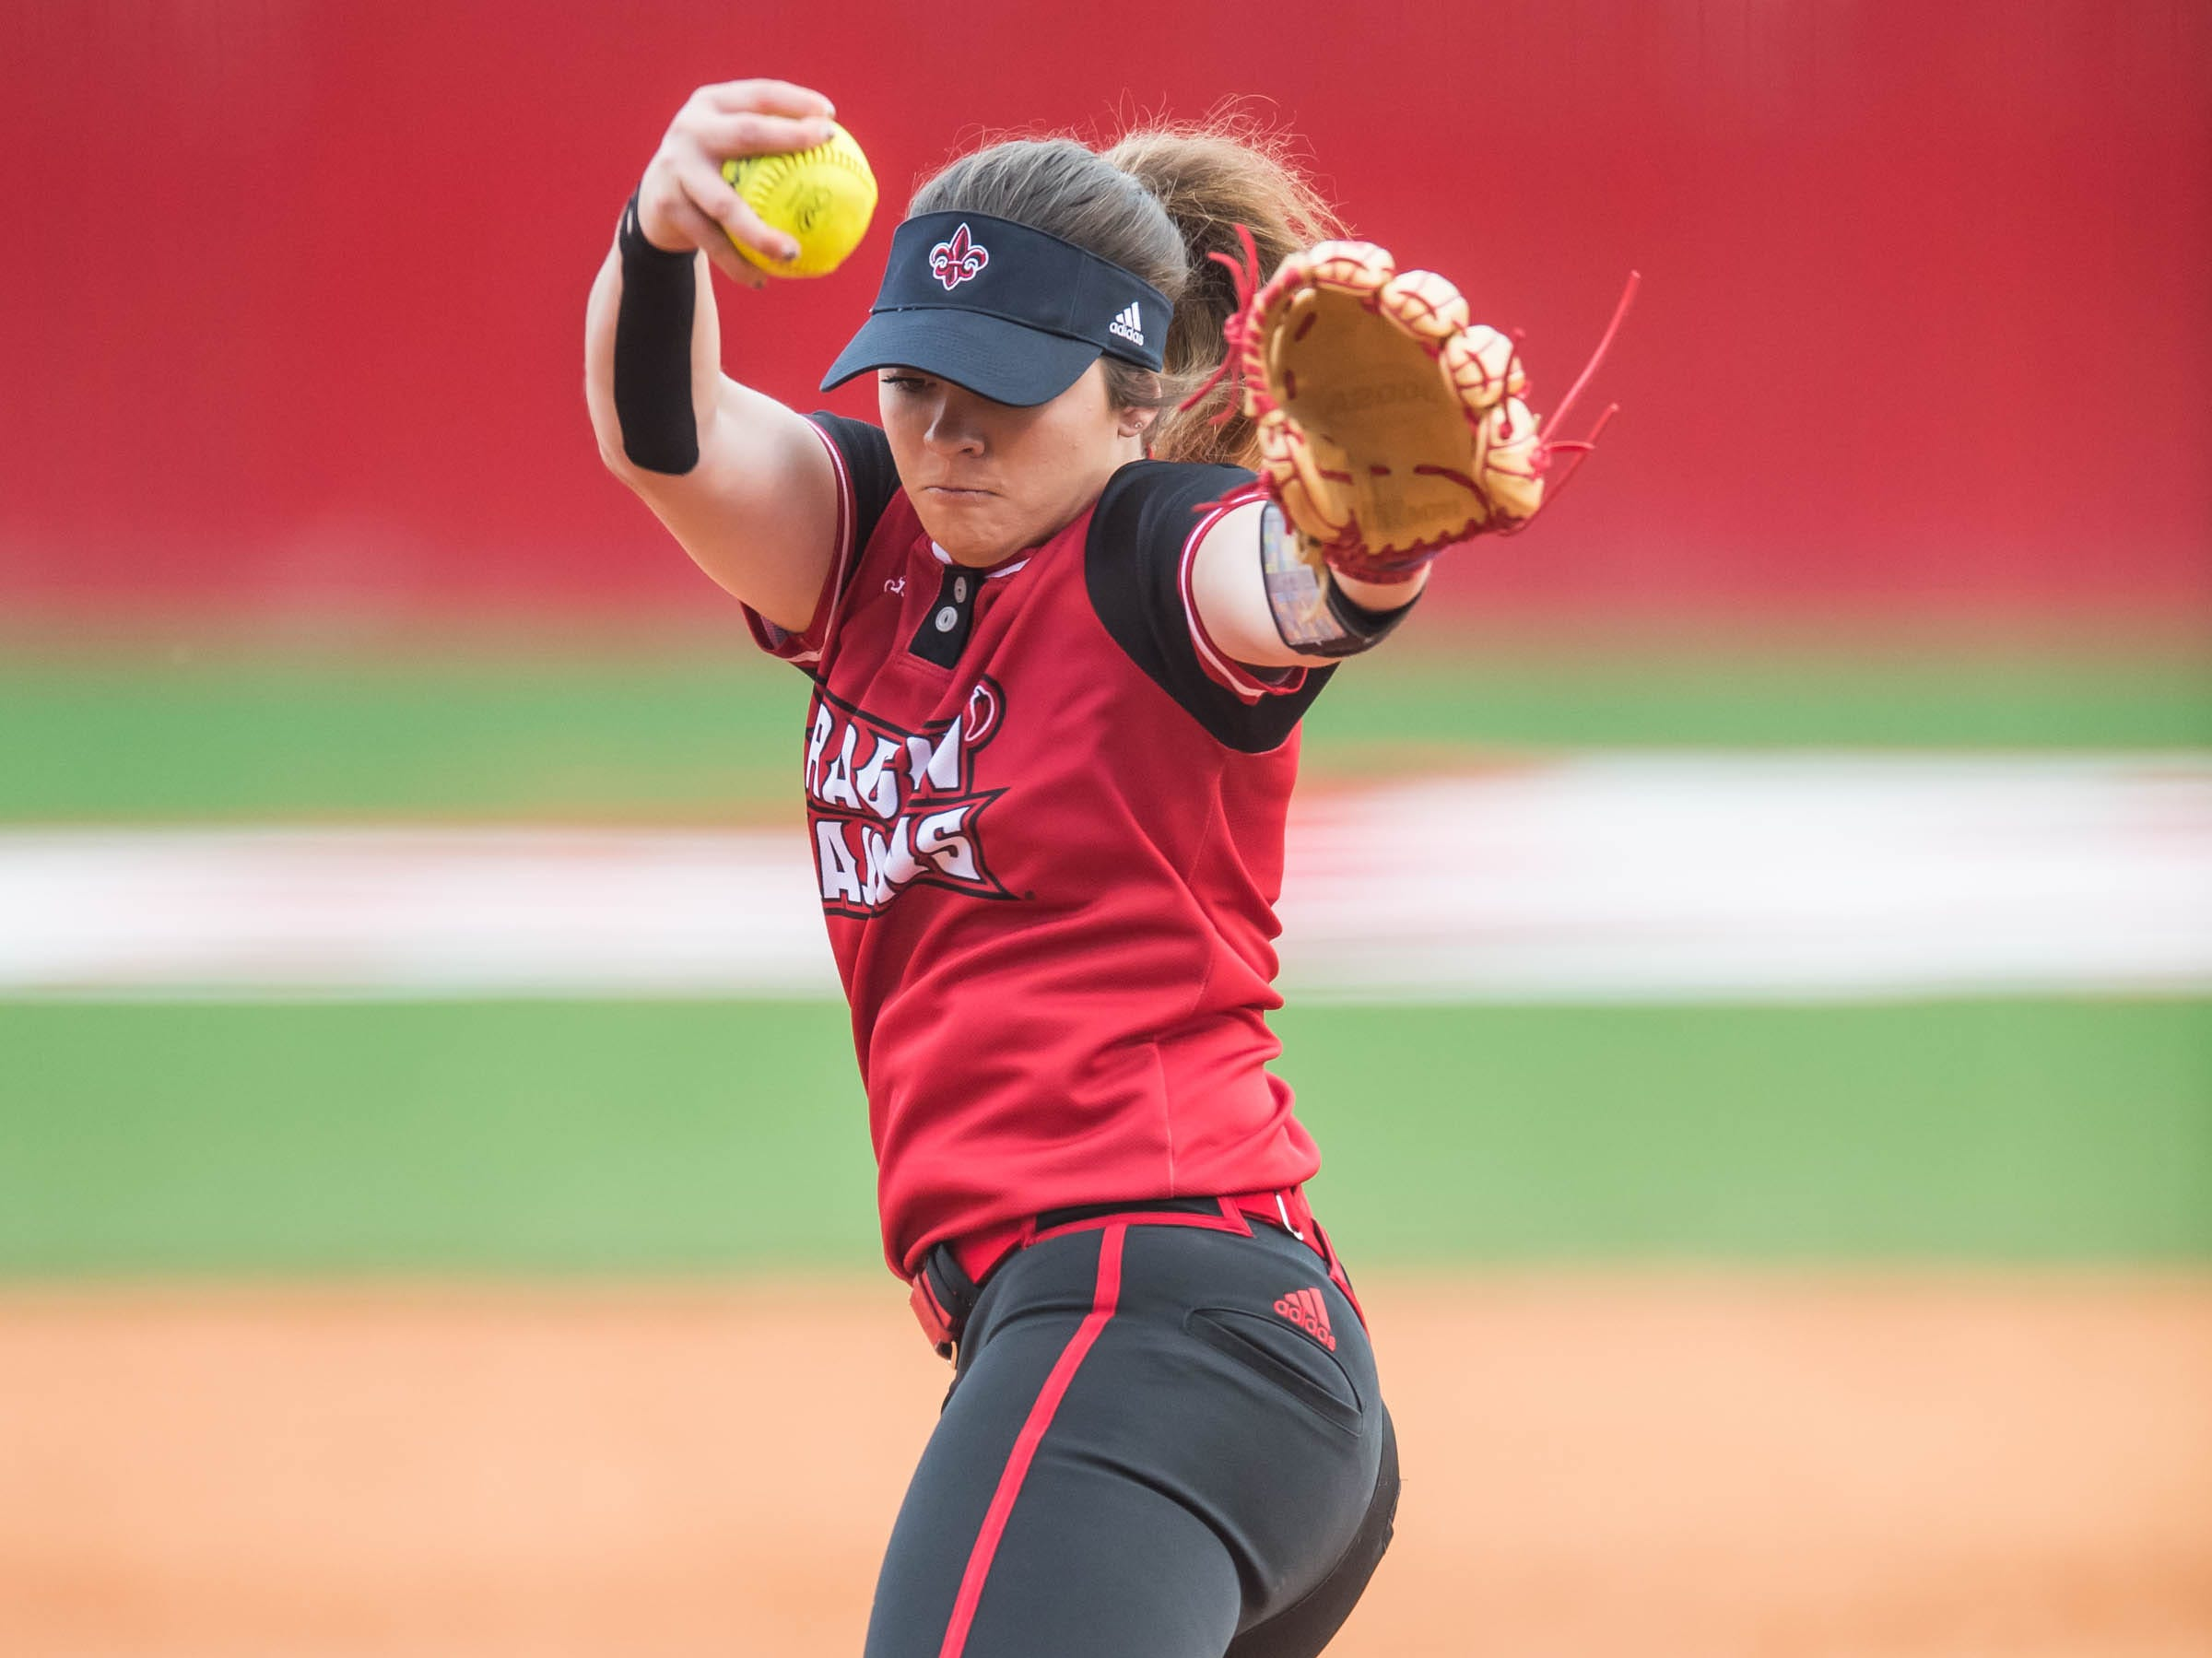 UL pitcher Summer Ellyson throws 16 strike outs against the Baylor Bears on Monday night at Lamson Park.